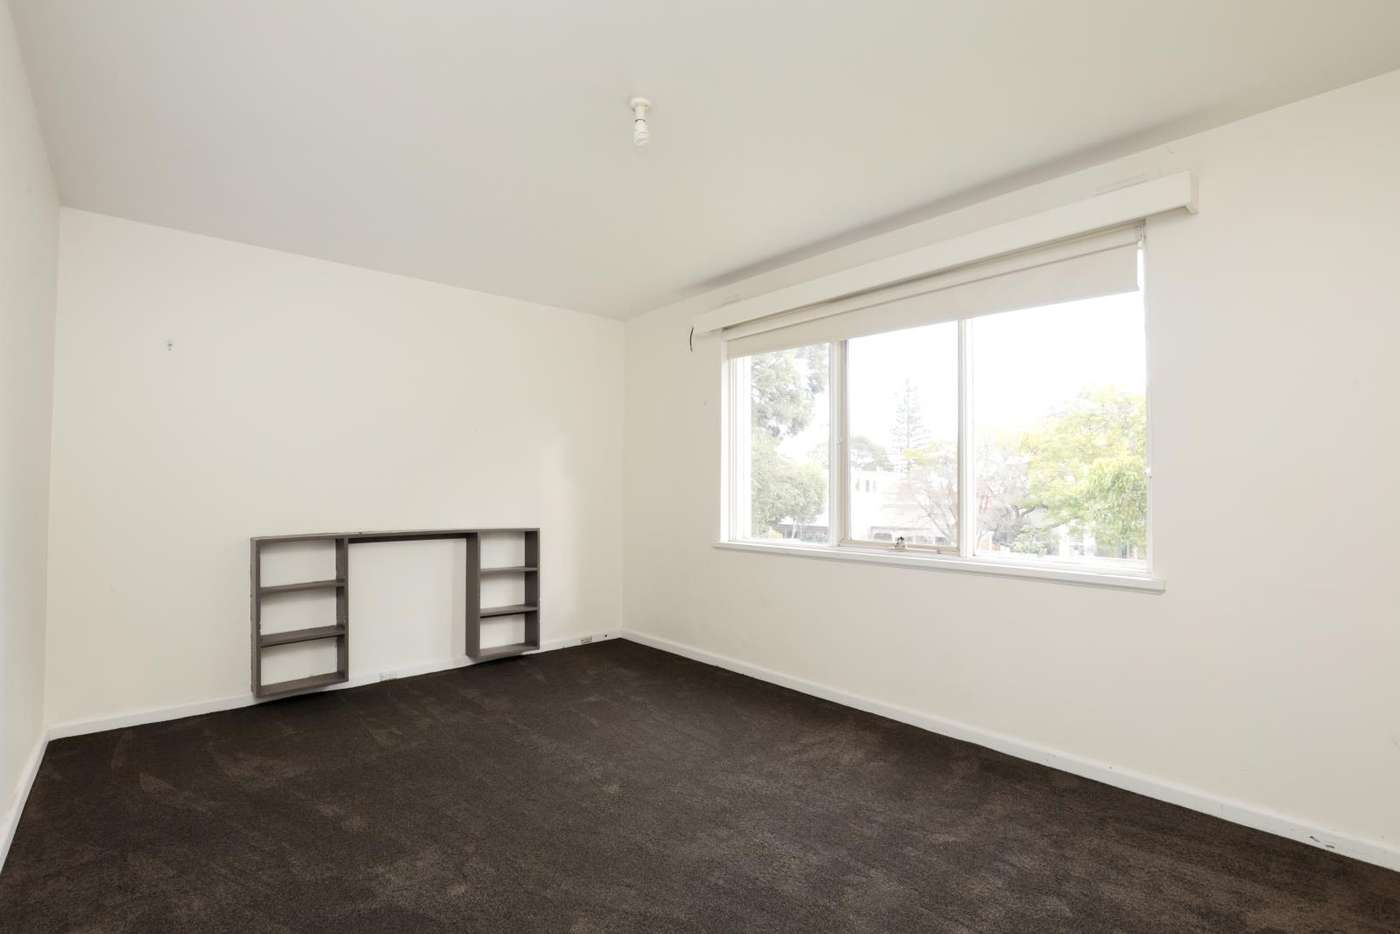 Main view of Homely apartment listing, 02/19 Elphin Grove, Hawthorn VIC 3122